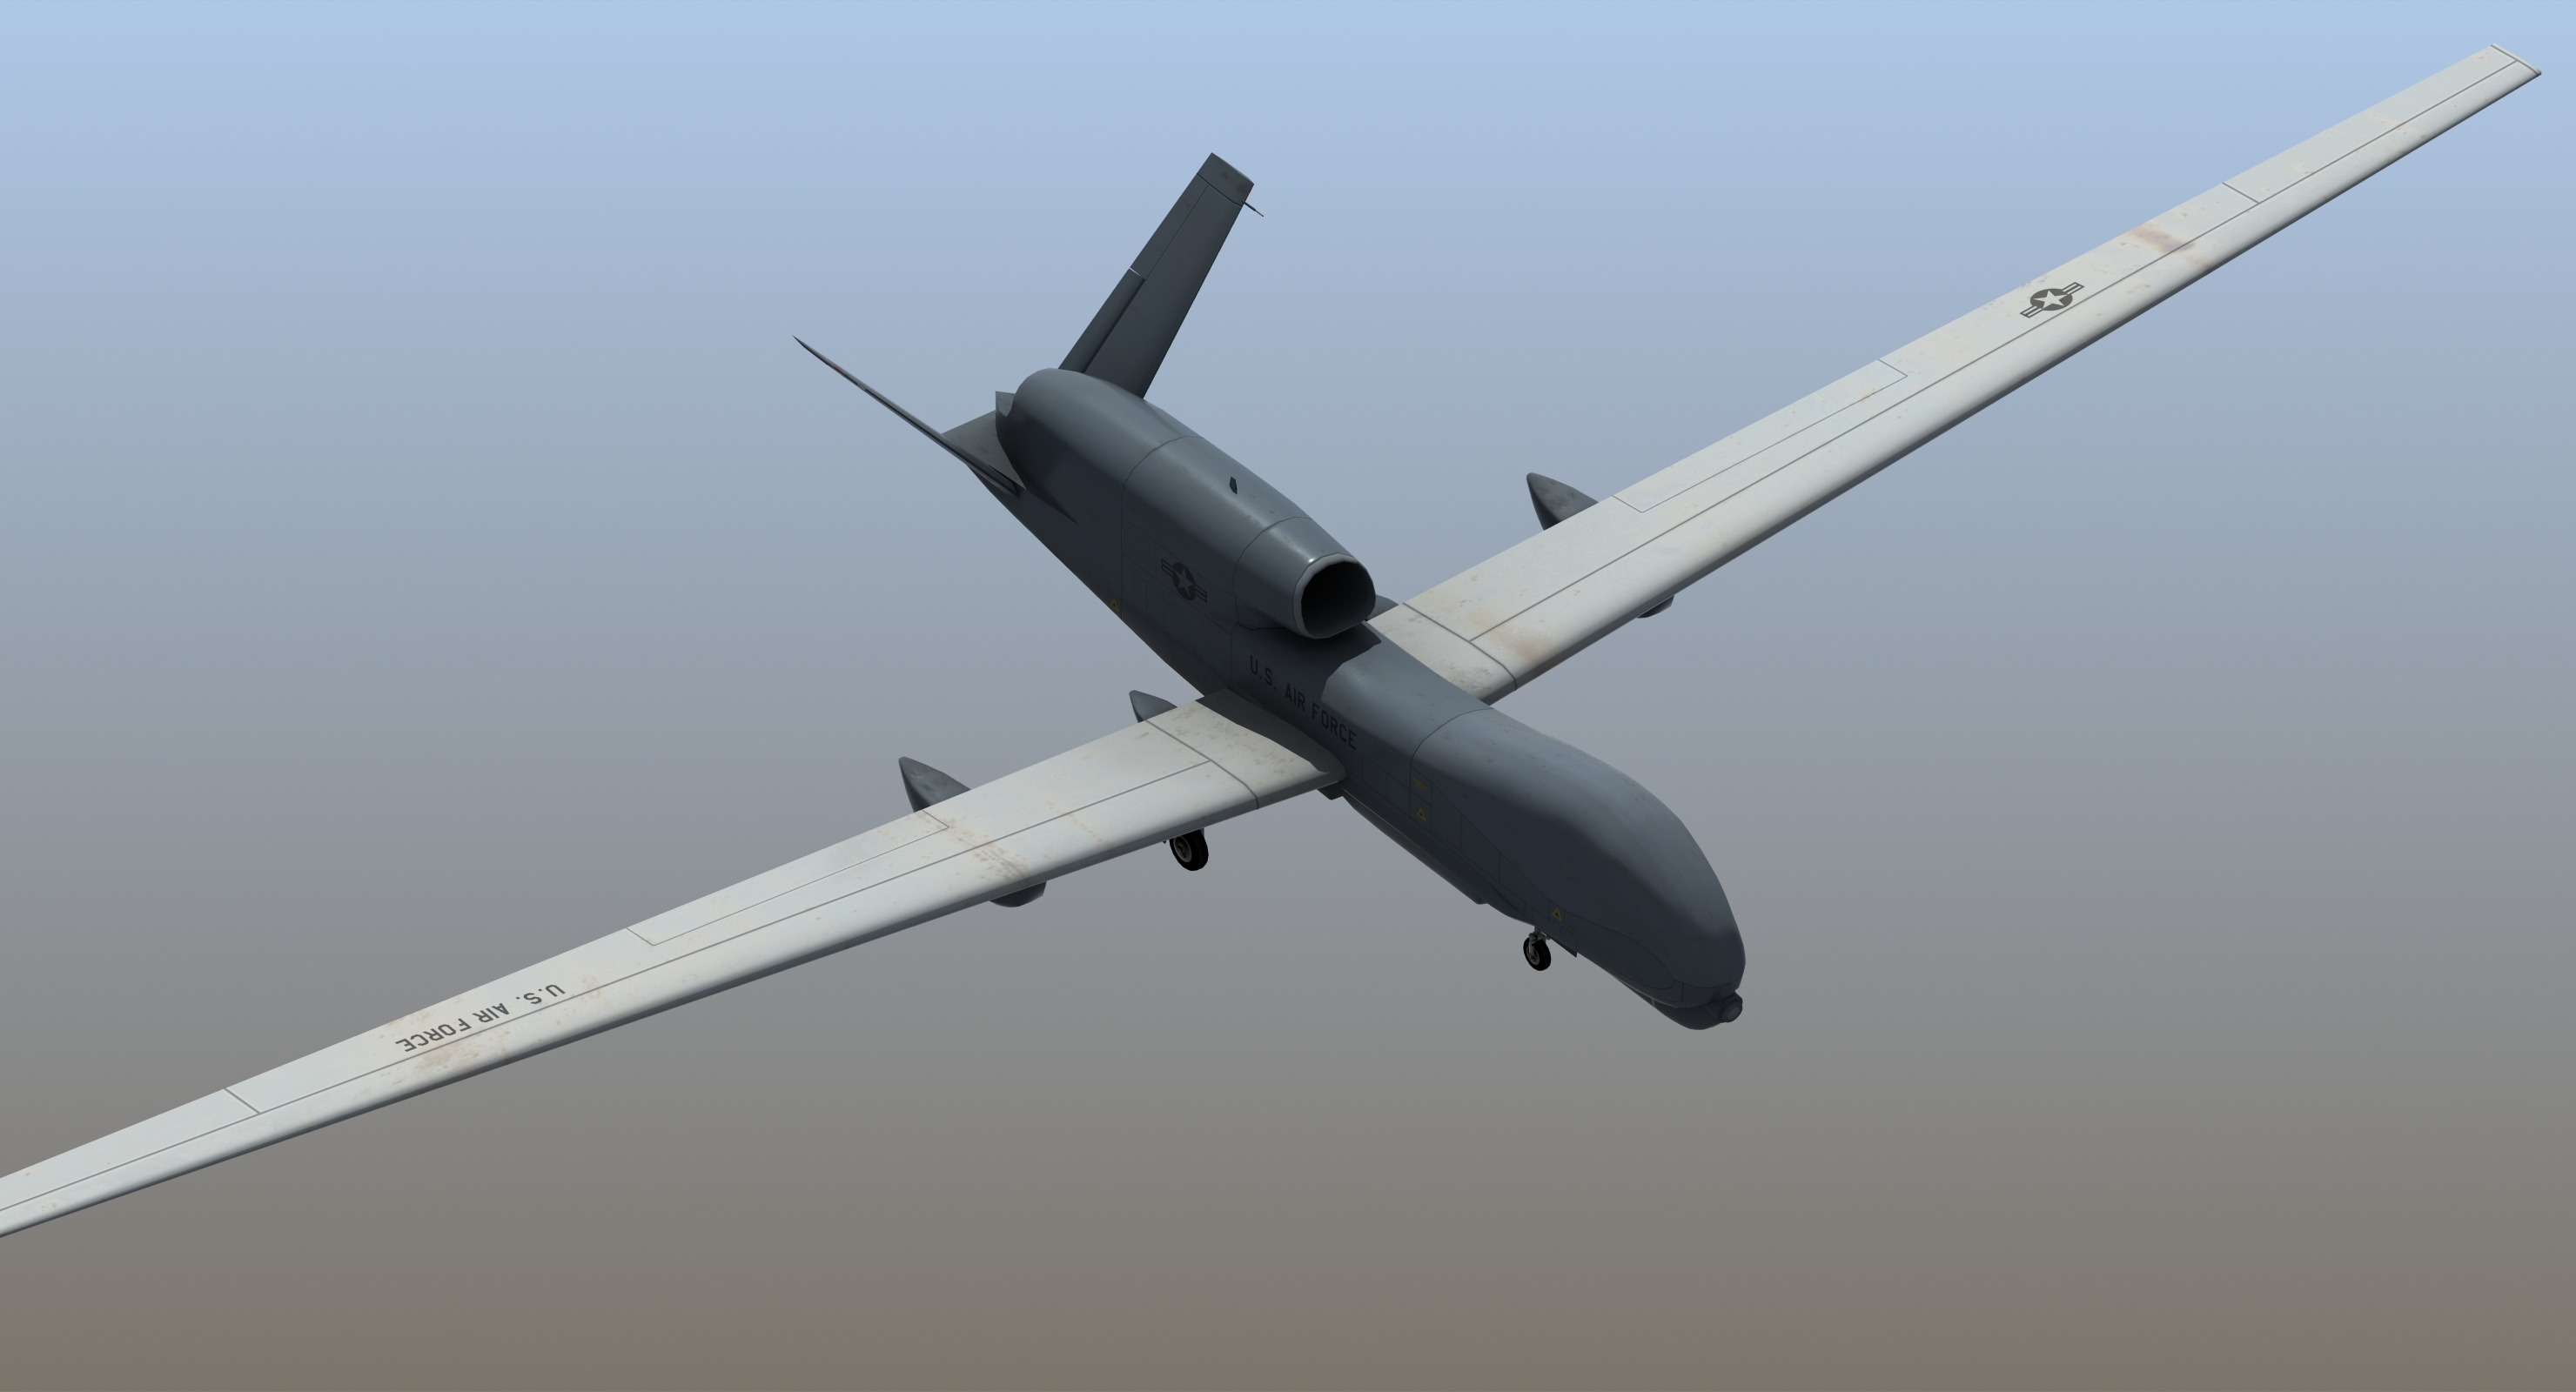 rq-4b global hawk uav drone 3D model https://static.turbosquid.com/Preview/001261/685/FX/_D.jpg